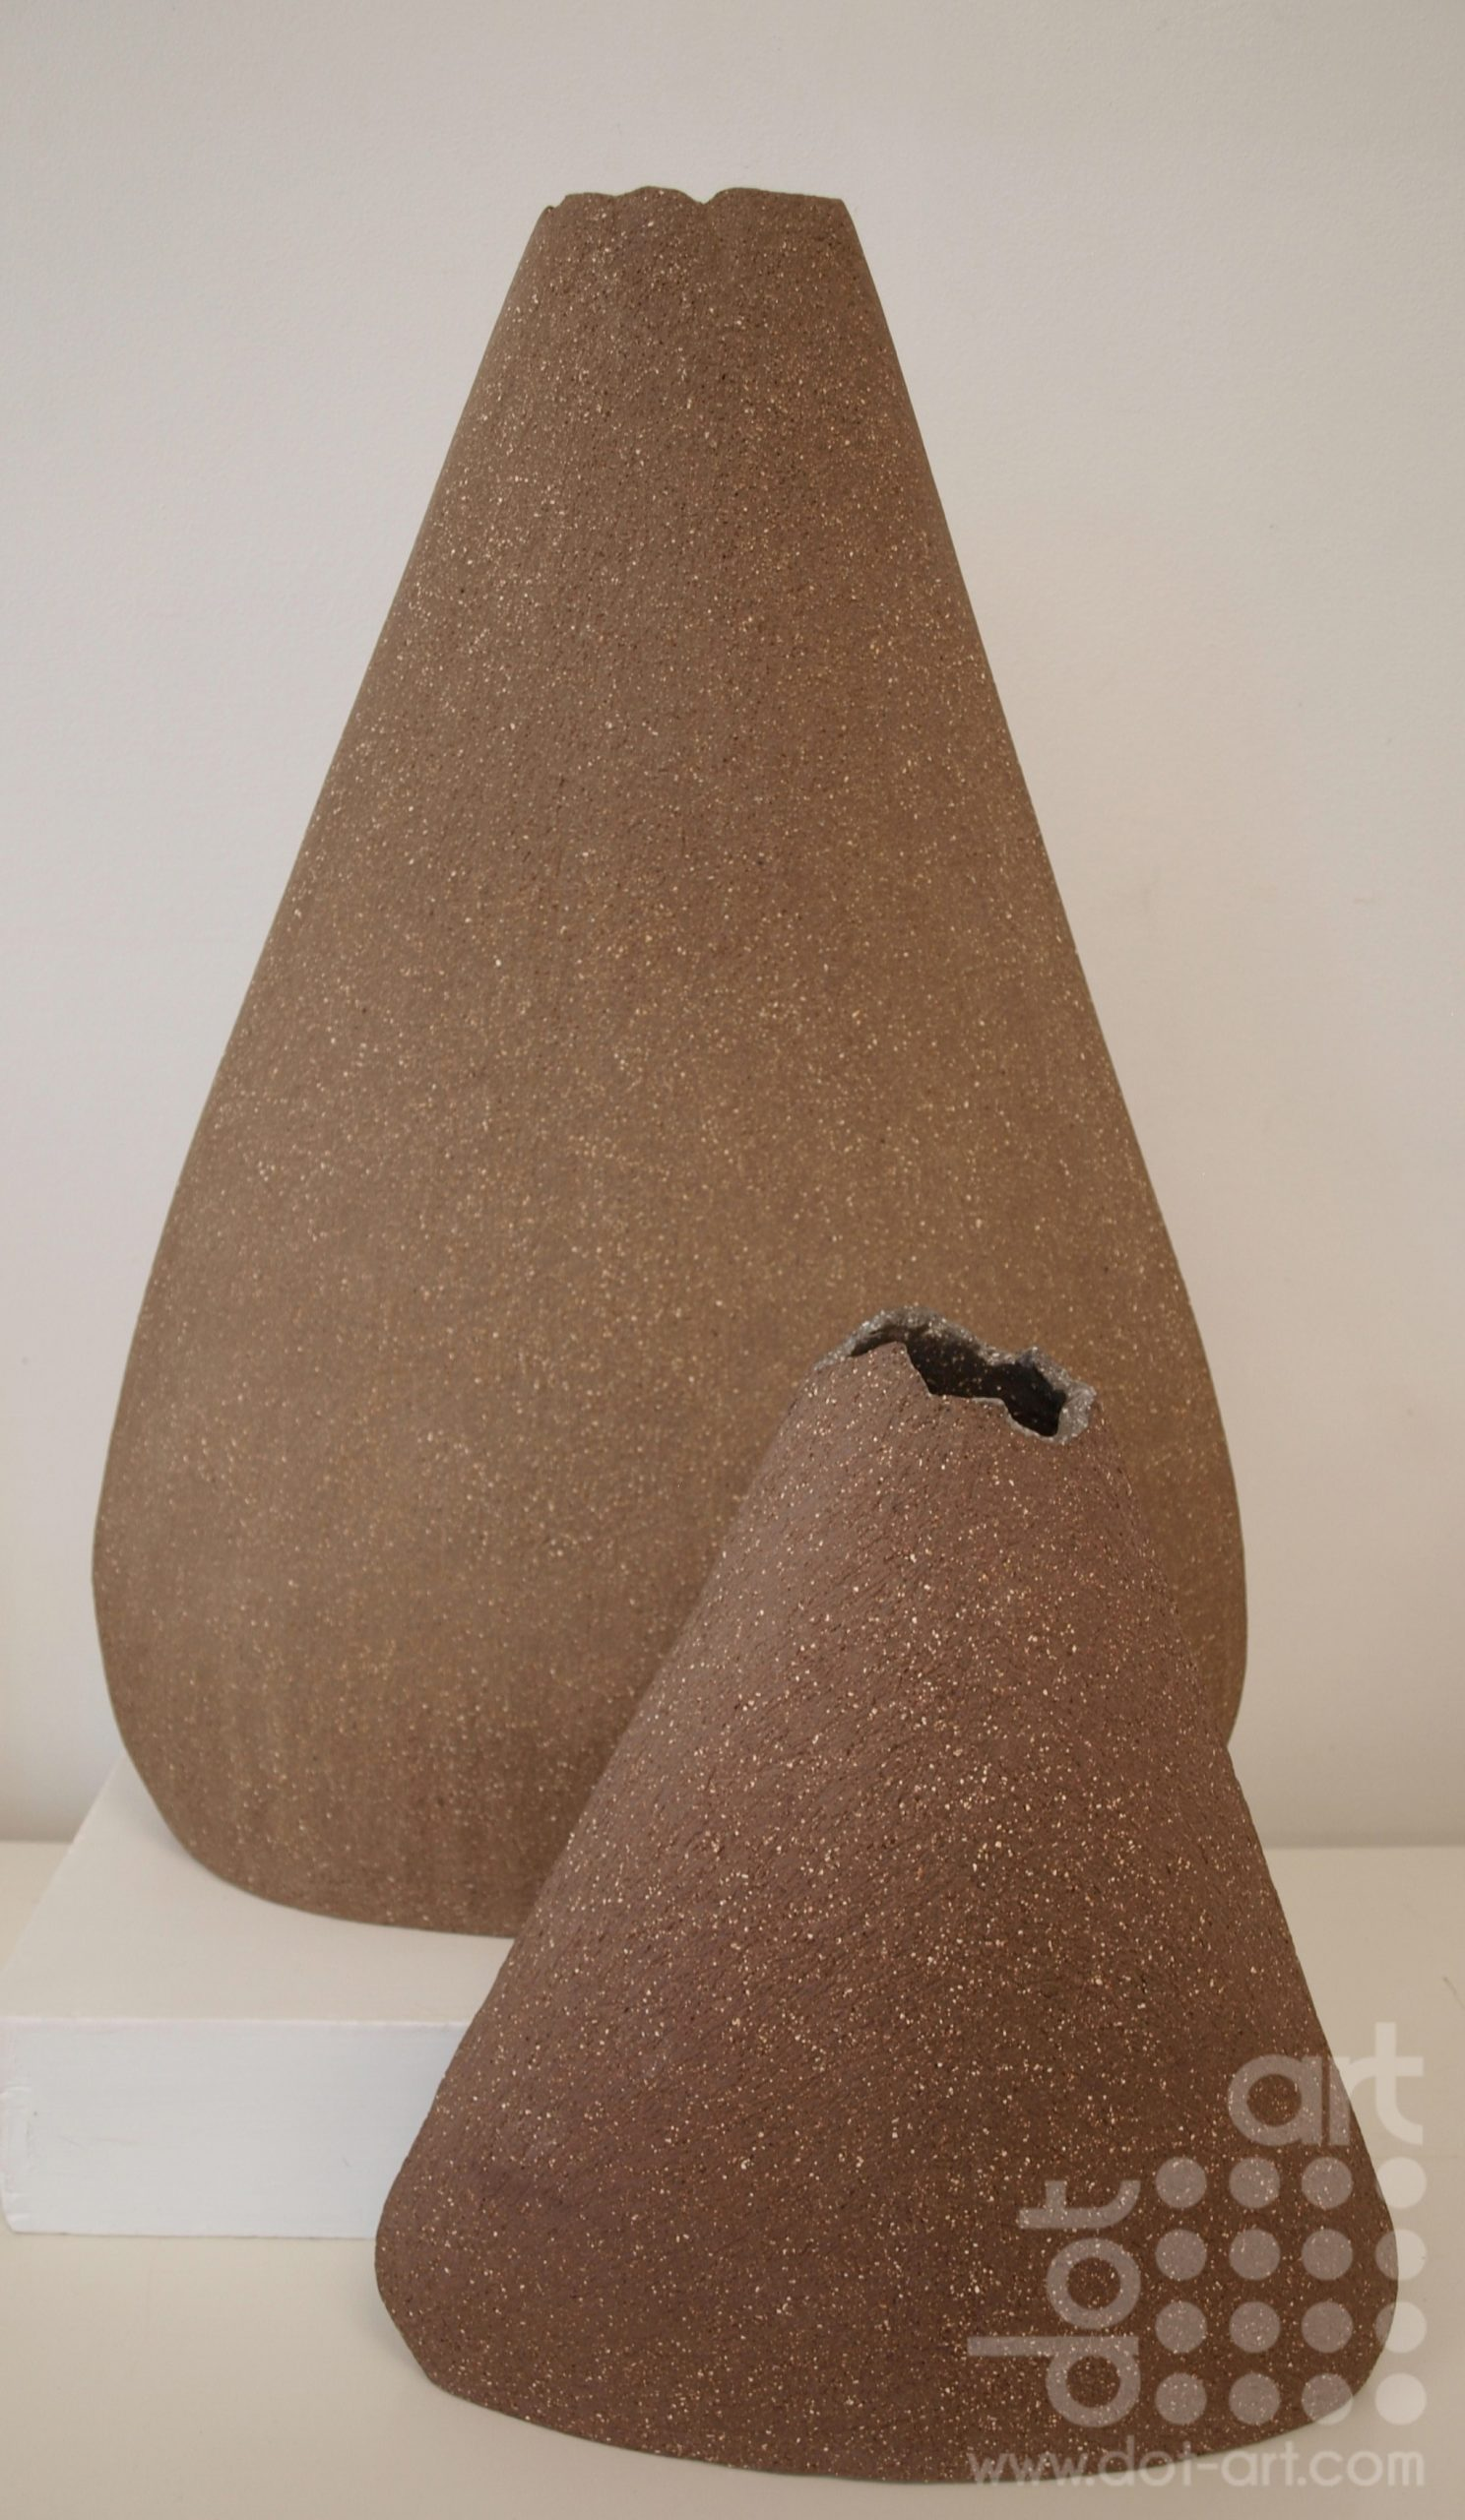 High fired sculptural terracotta clay